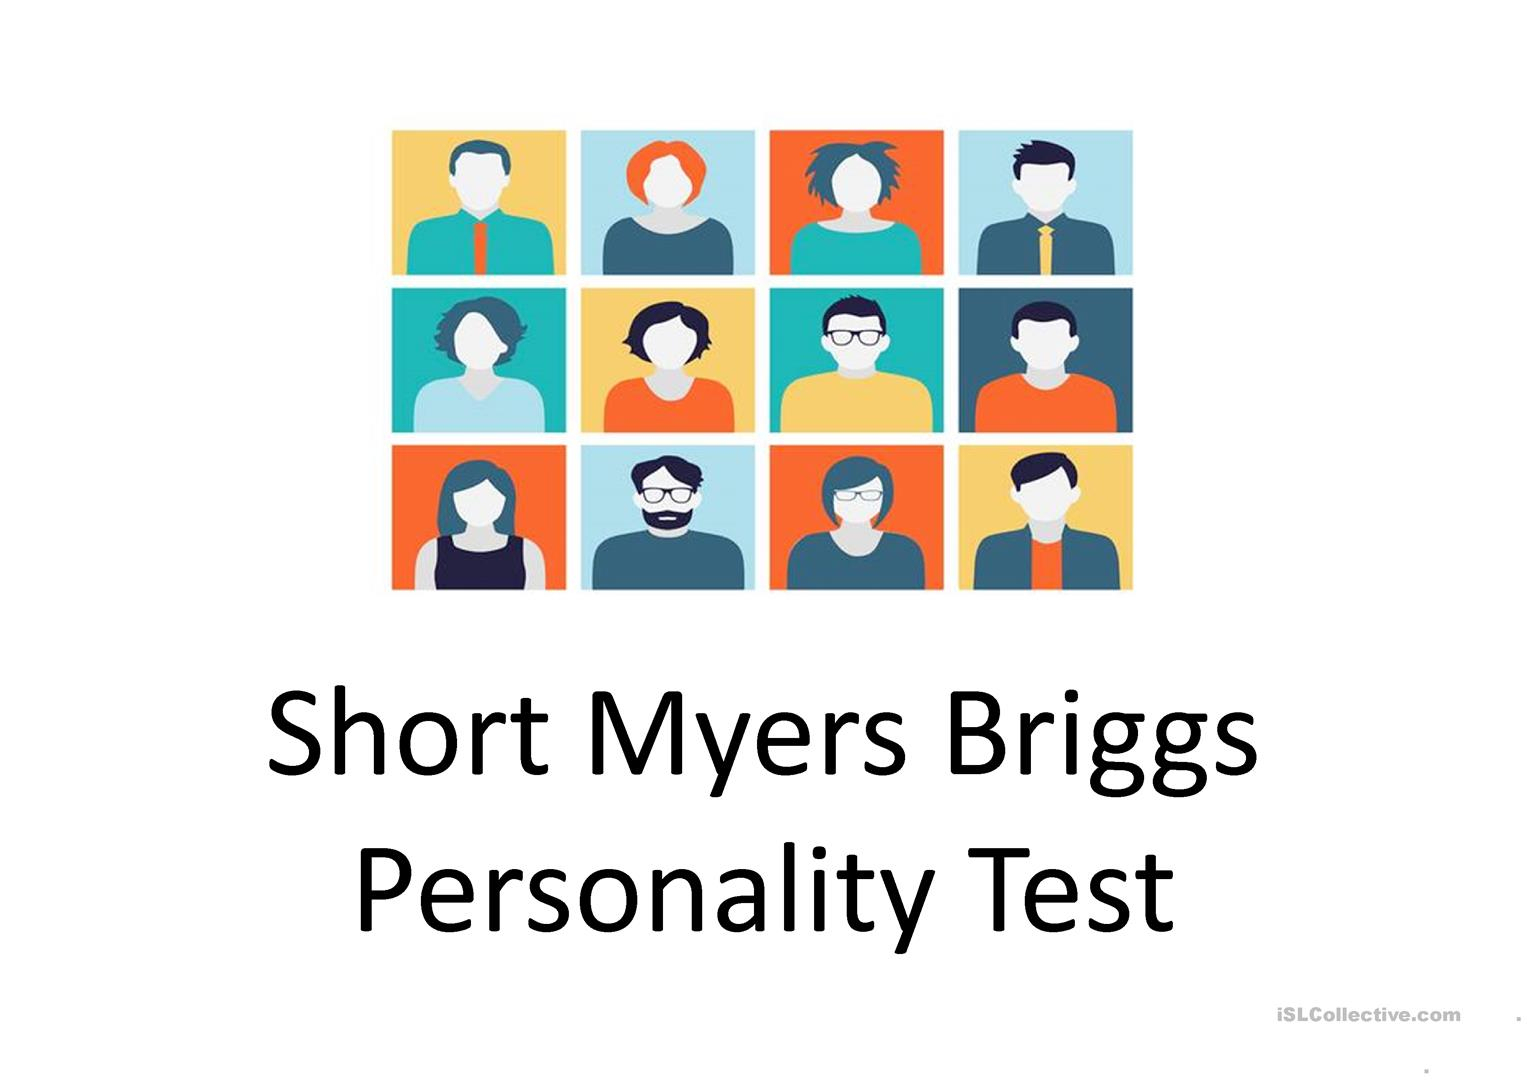 Short Myers Briggs Personality Test Worksheet - Free Esl Projectable - Free Printable Personality Test